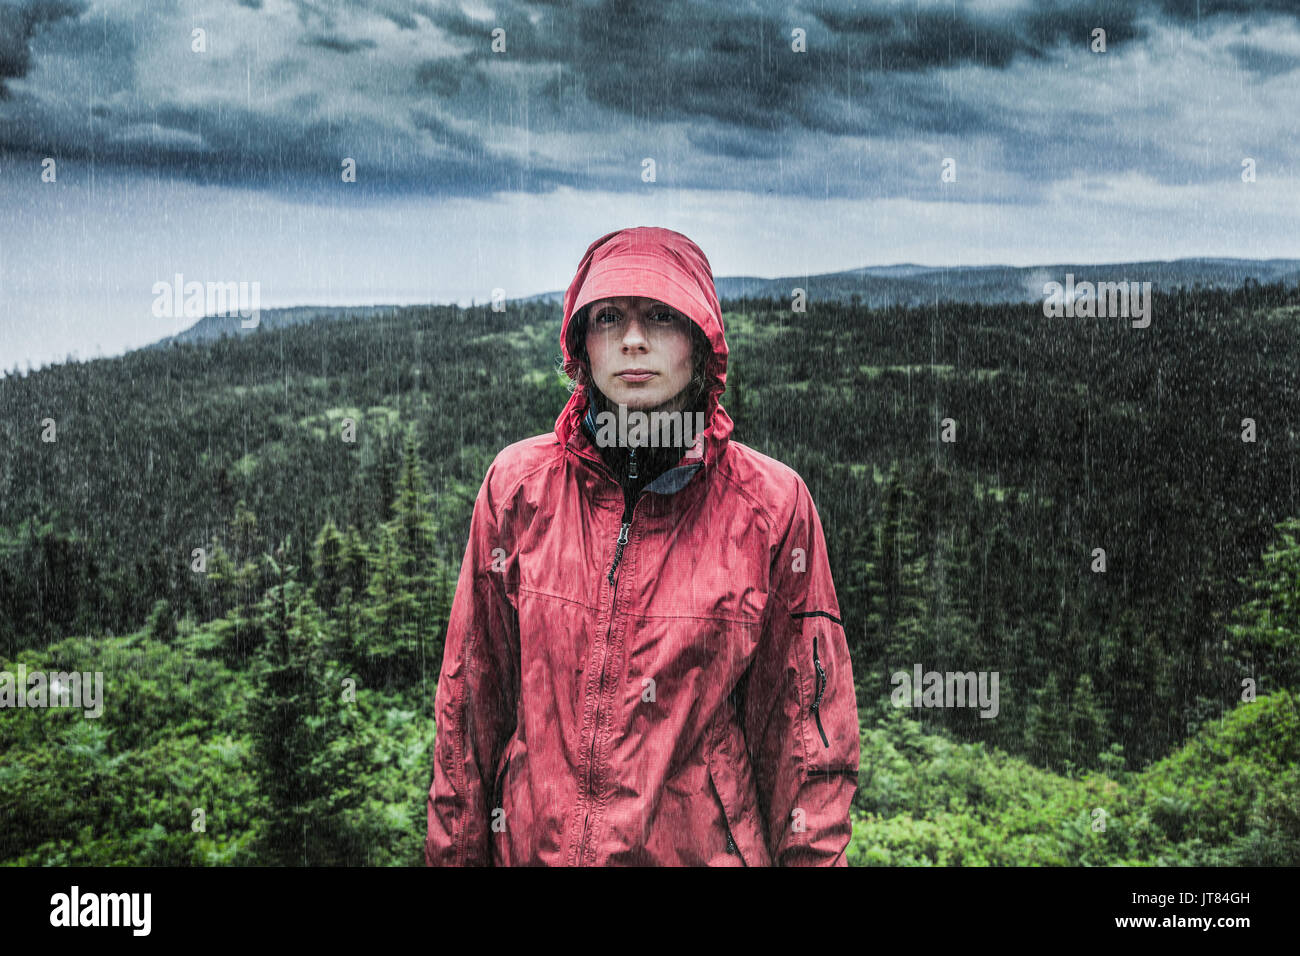 Unpredictable Heavy Rain Pouring on a Sad and Frustrated Young Woman Alone on top of a Mountain. - Stock Image